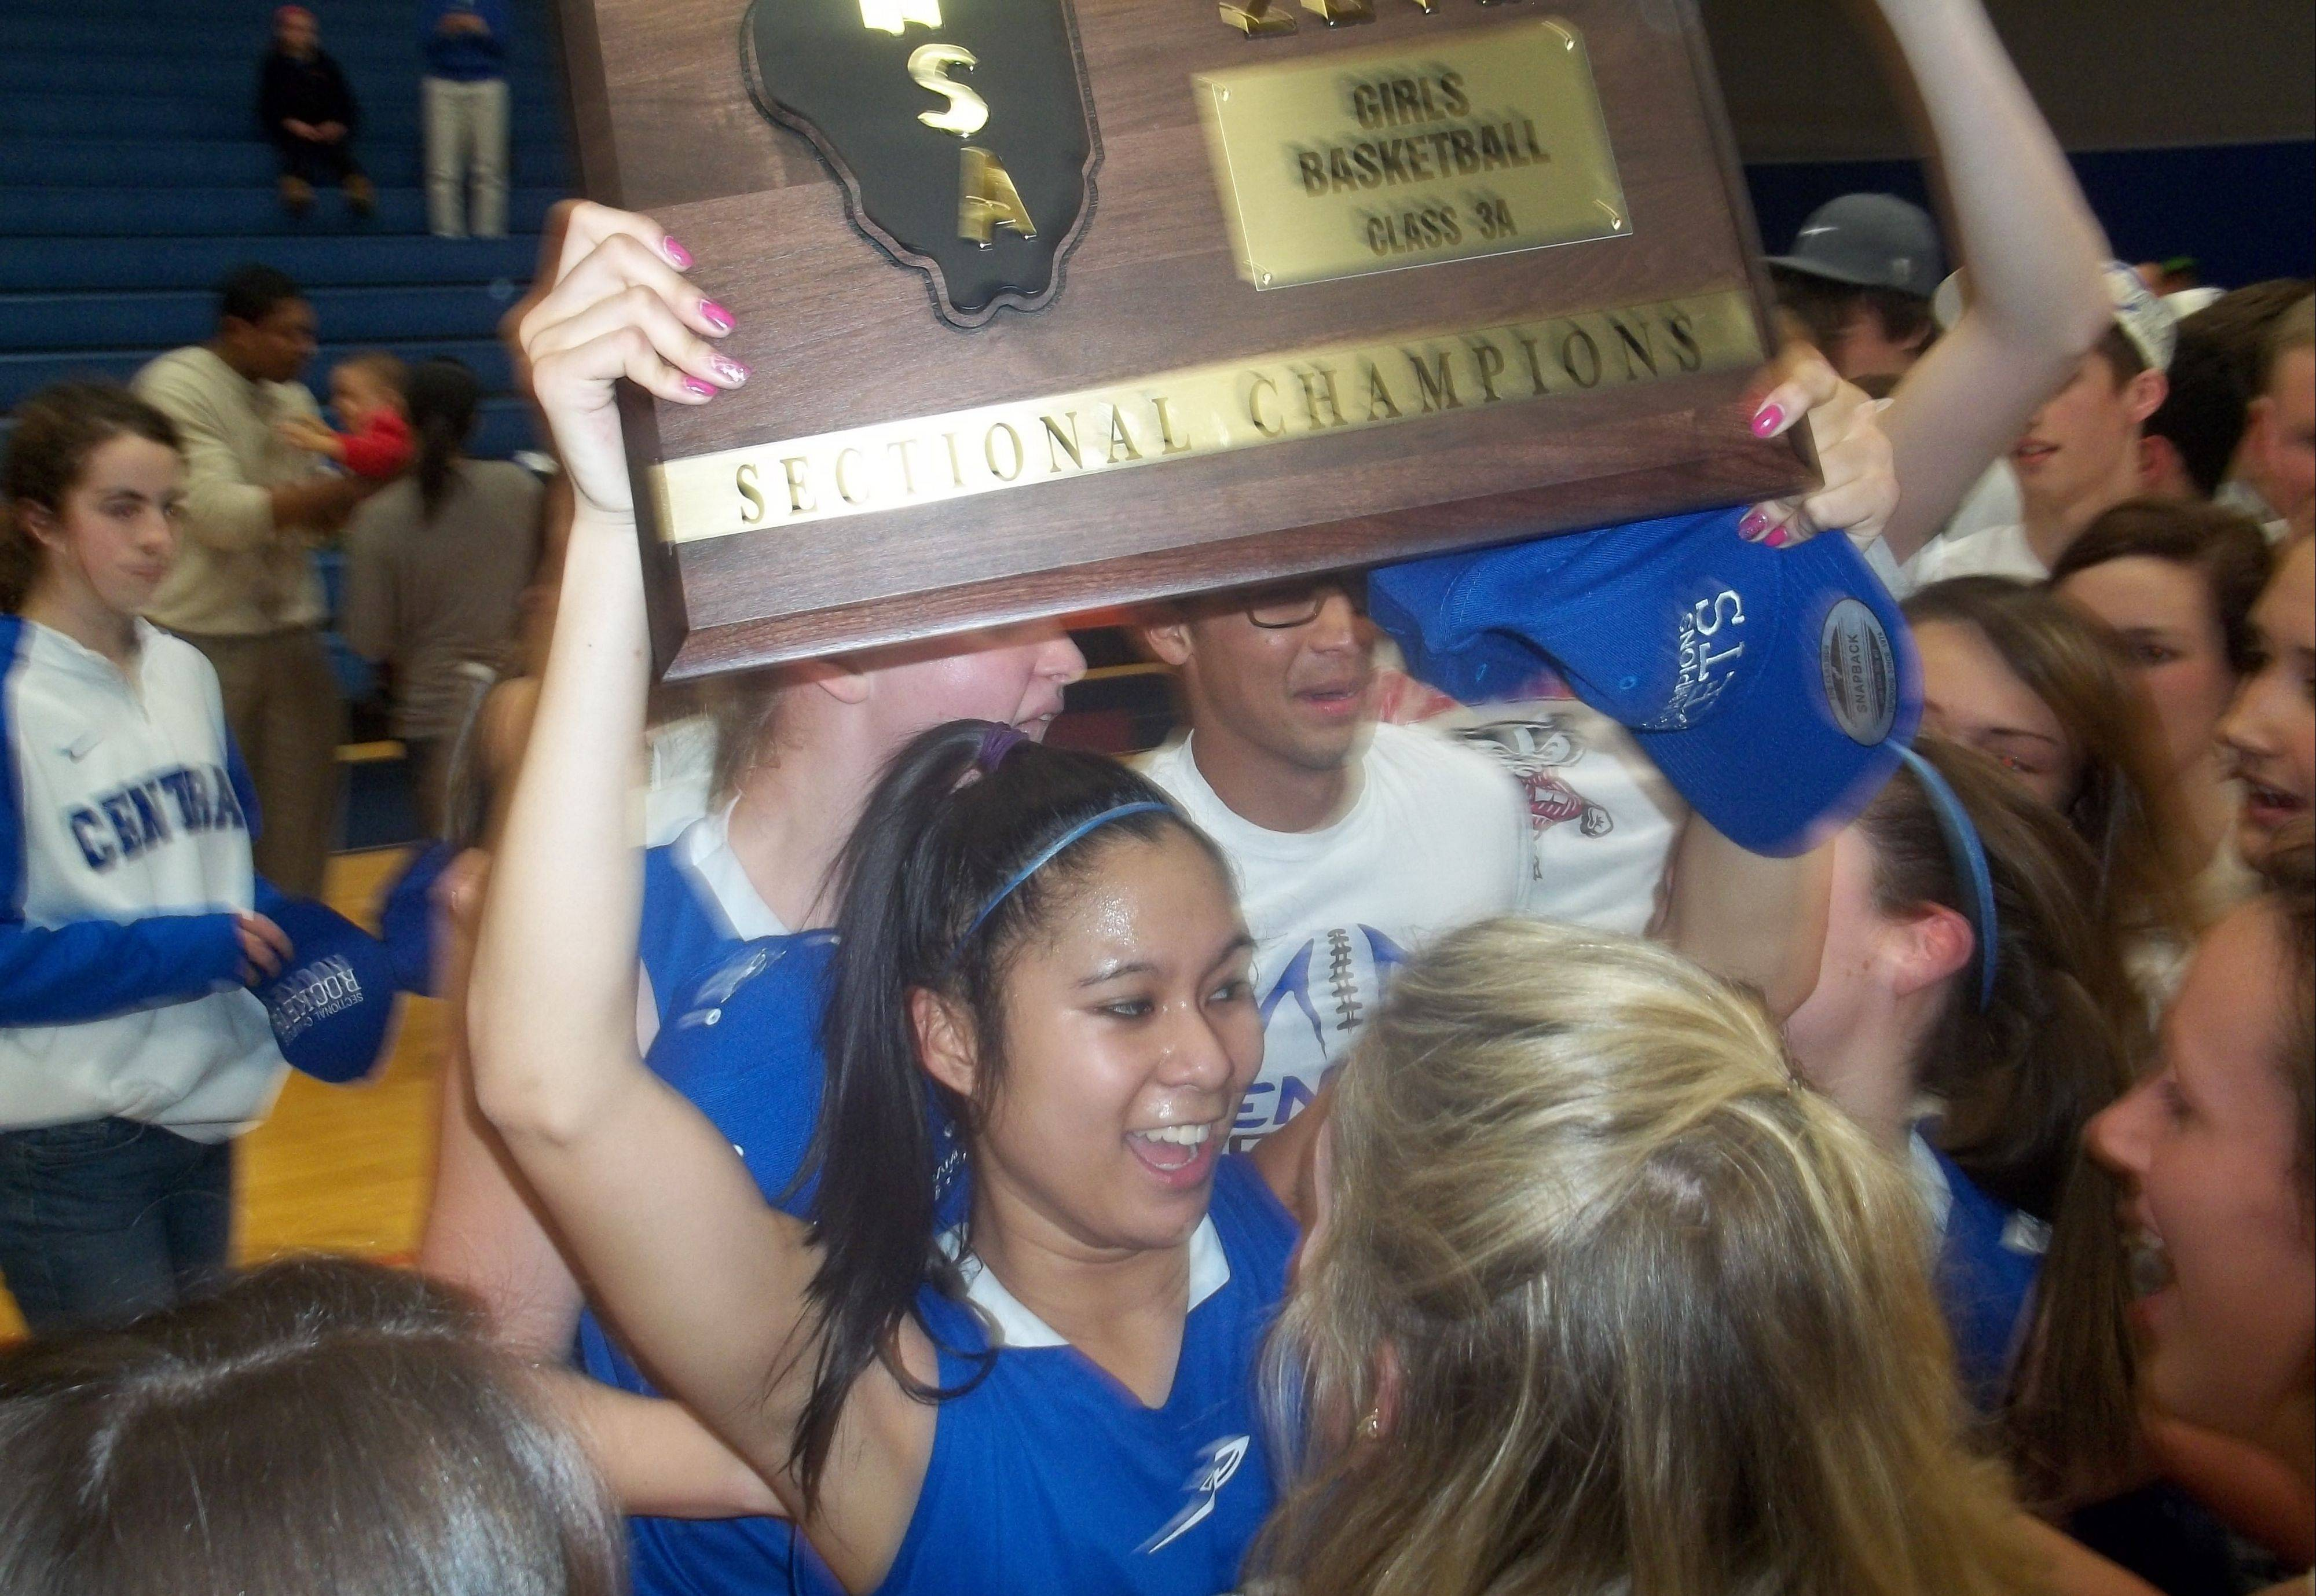 Burlington Central senior Camille Delacruz celebrates with the Class 3A sectional championship plaque Thursday night after the Rockets' 49-26 win over Sterling in the championship game at Genoa-Kingston.